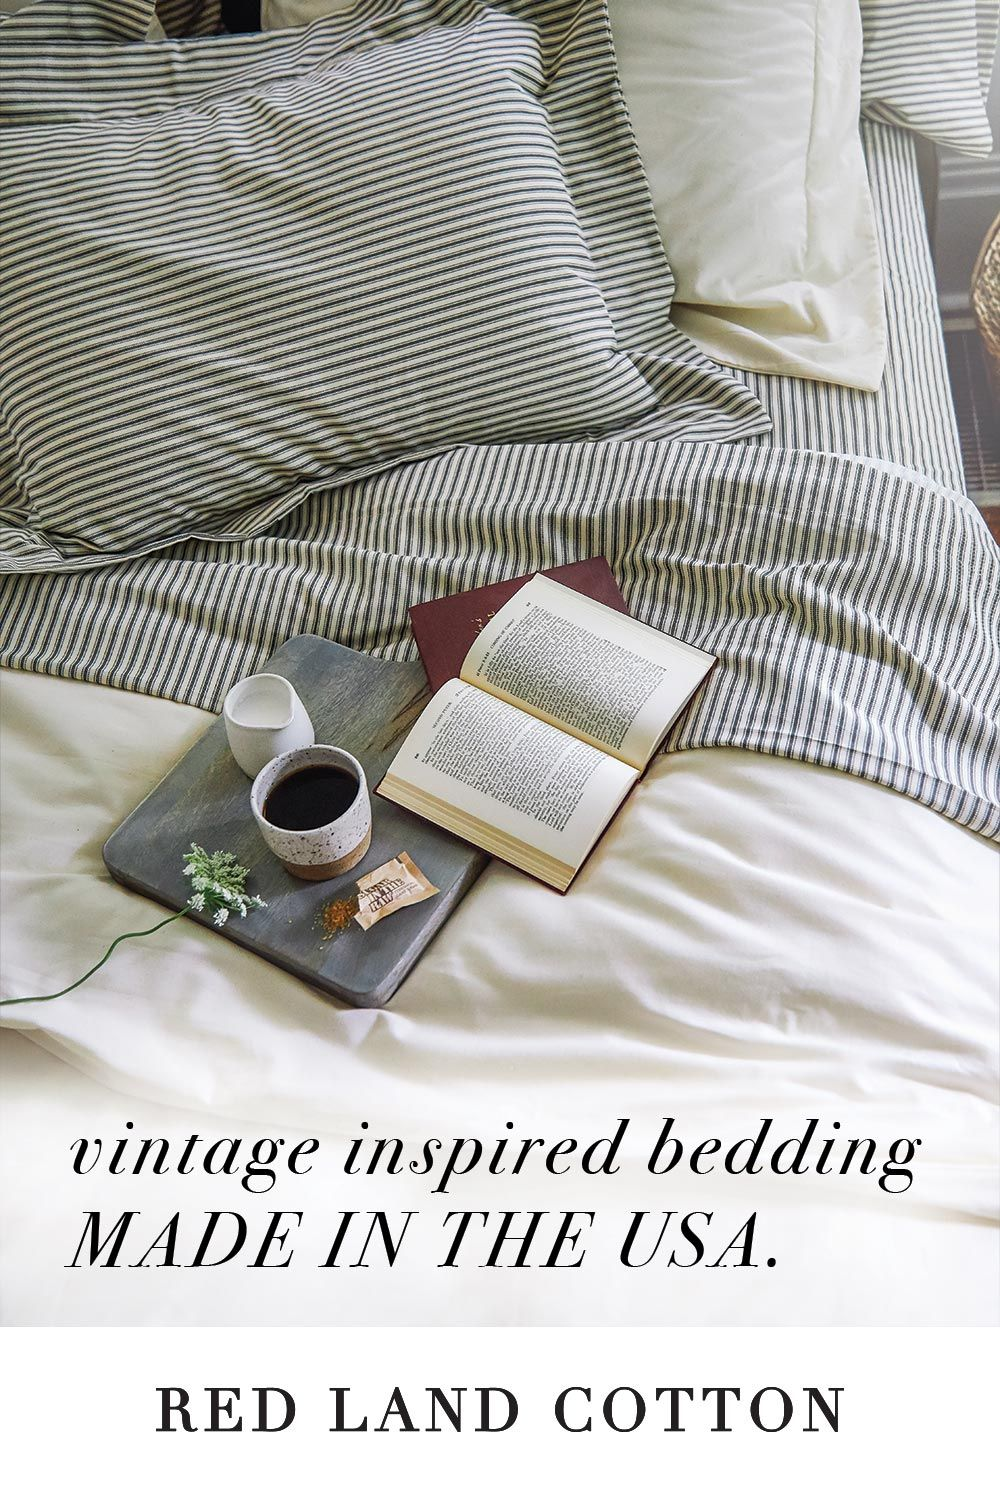 Red Land Cotton Creates Vintage Inspired Bedding Exclusively From Cotton Fiber Grown On Their Family Farm And Manufactured Farm To Fabri How To Make Bed Cotton Bedding Bed